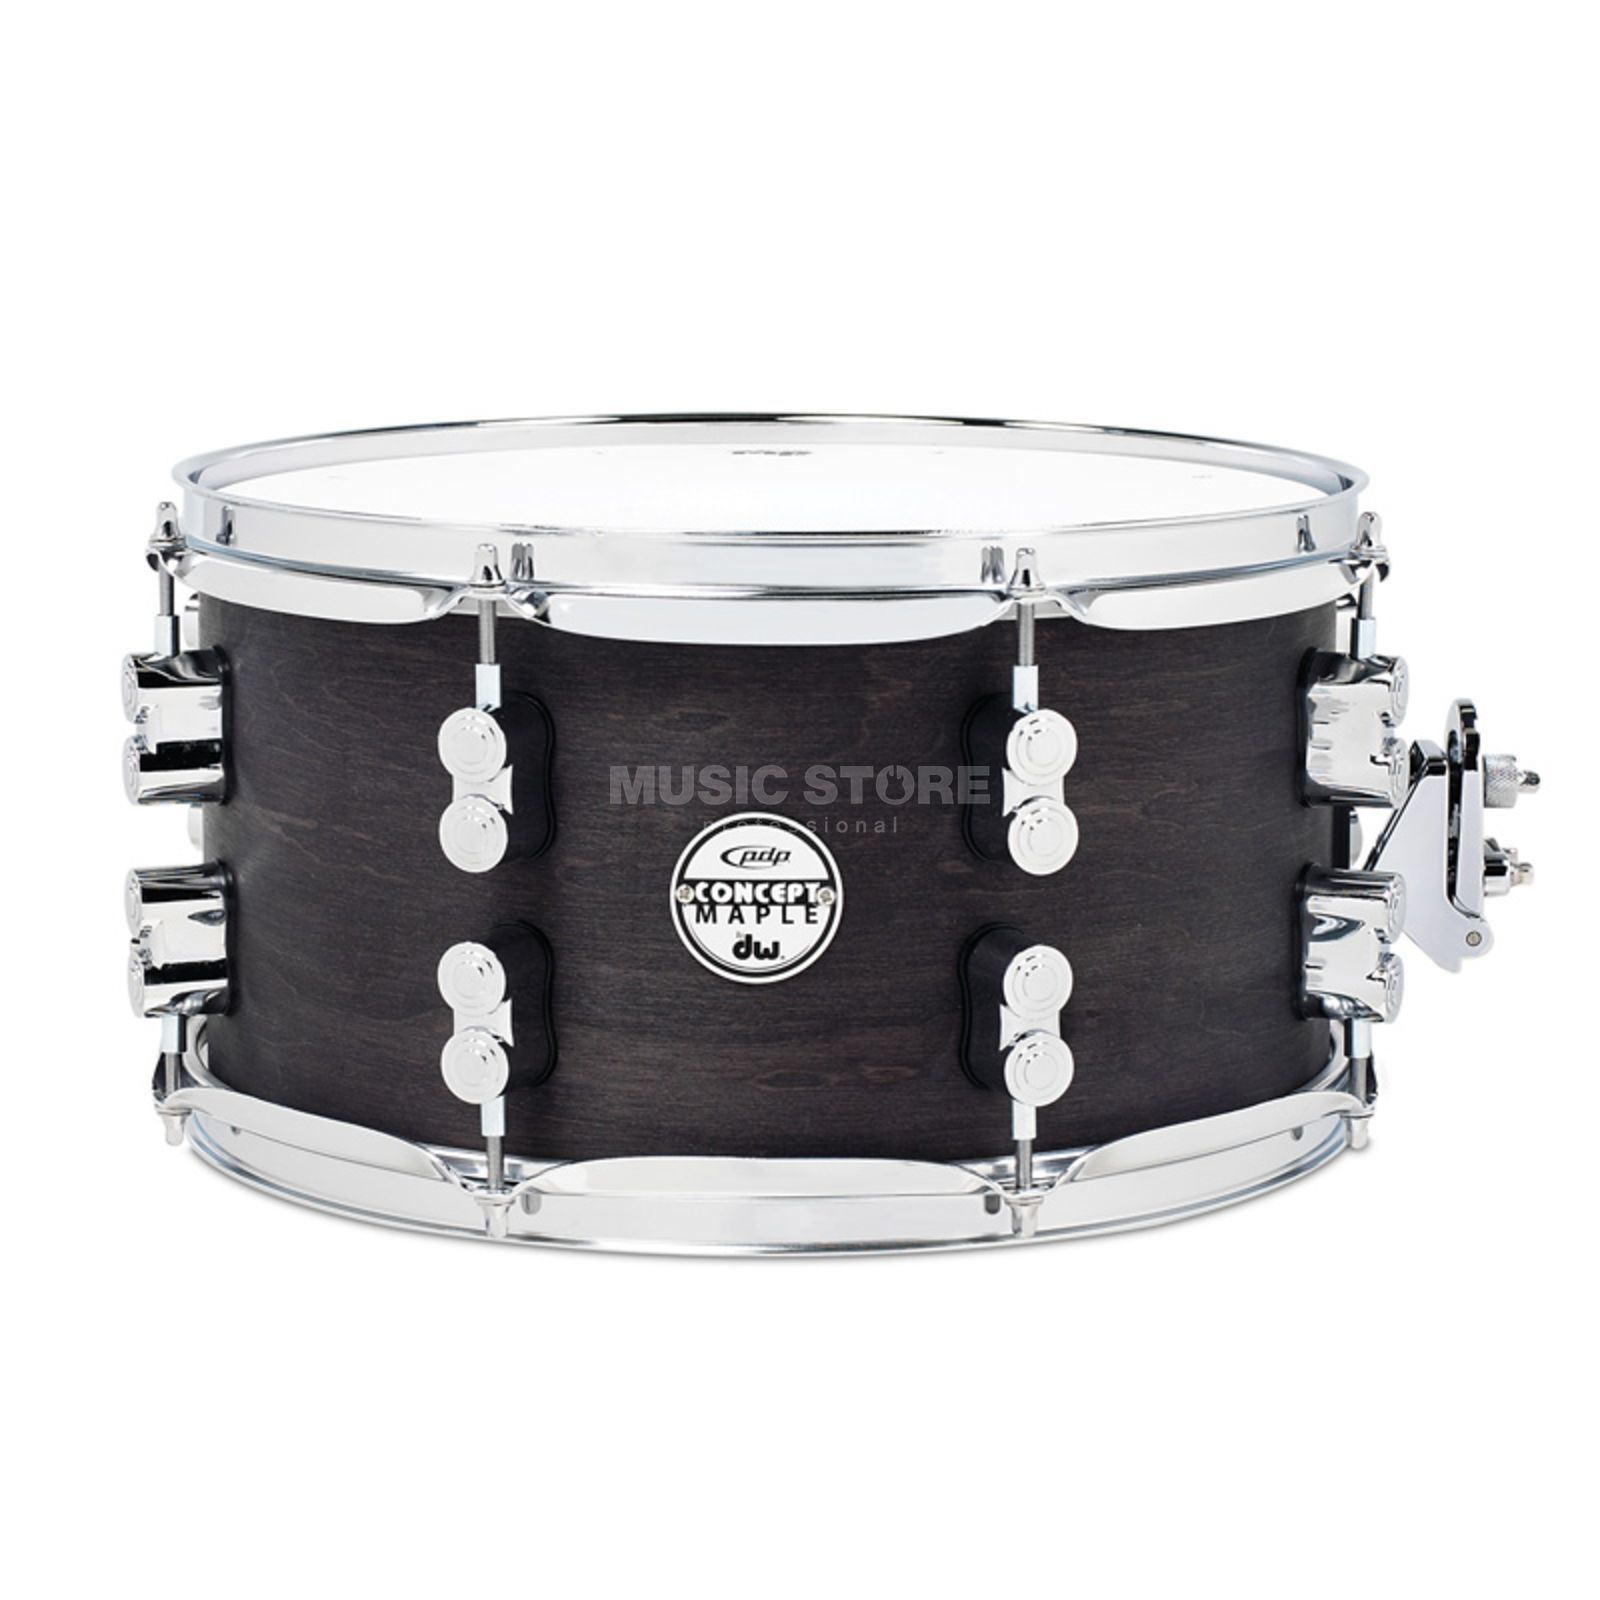 "Drum Workshop PDP Black Wax Snare 13""x7"" Produktbillede"